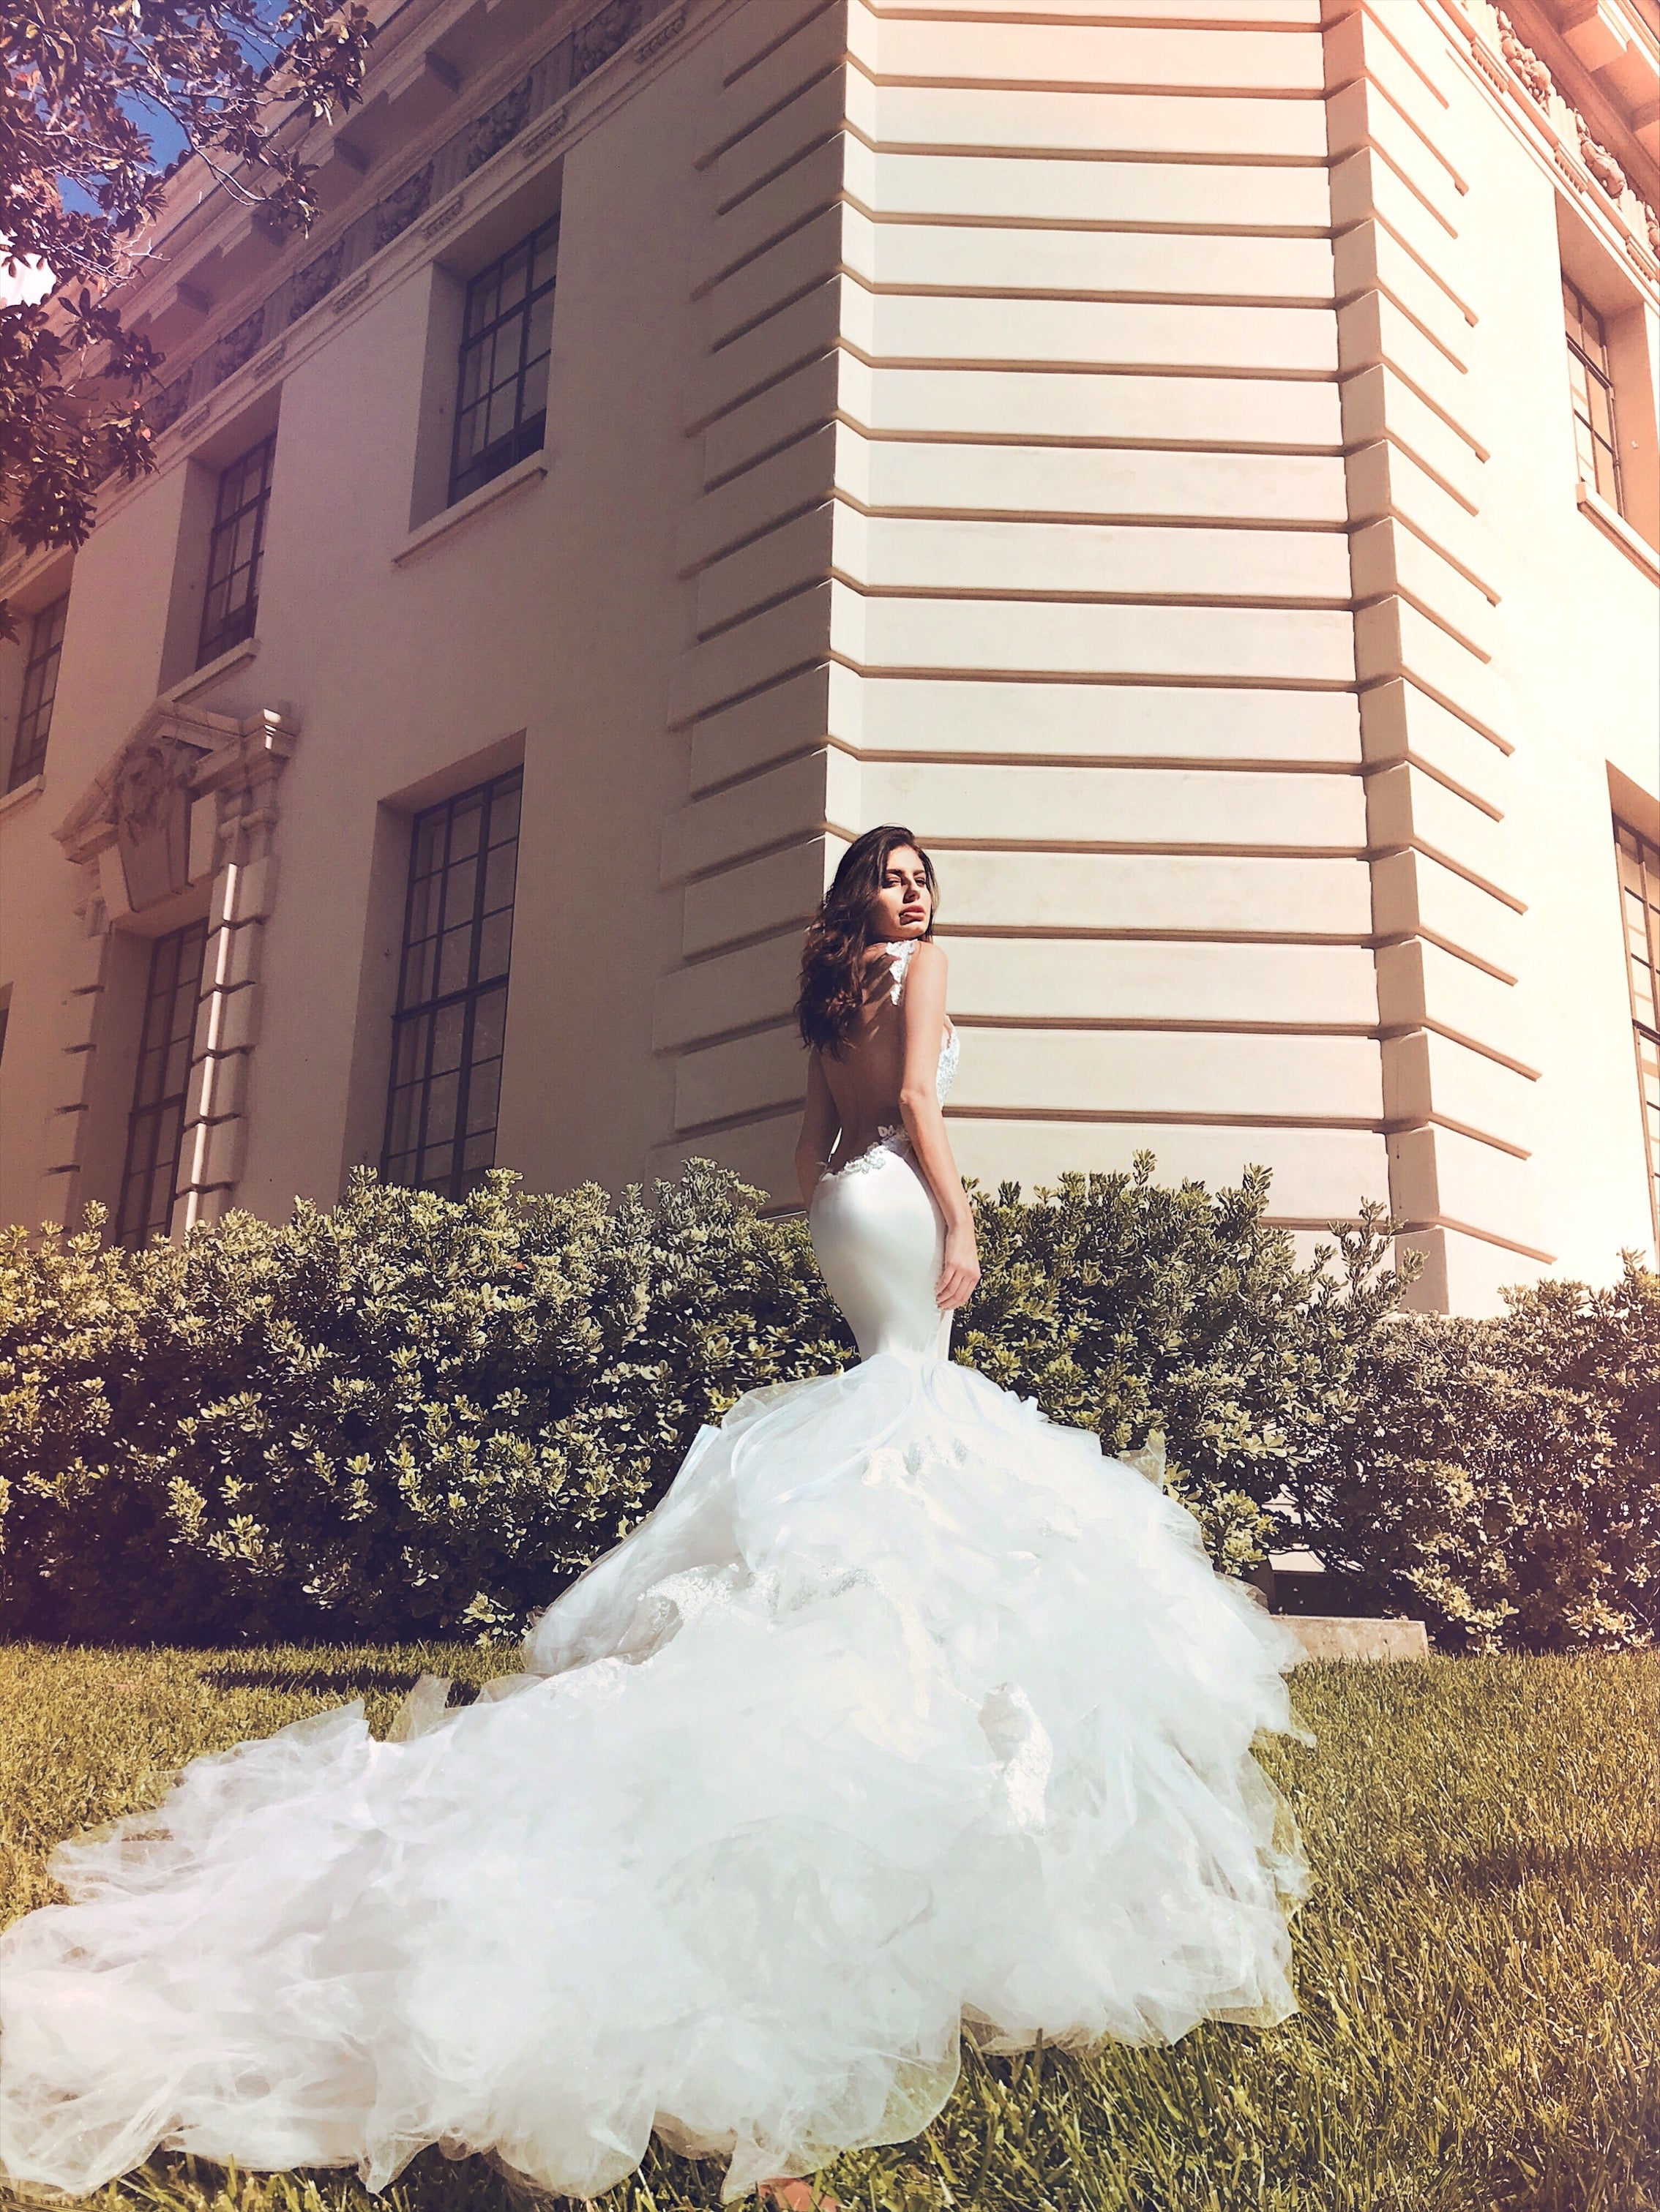 Backless satin mermaid wedding dress with crystal sparkle and 10ft train by Lauren Elaine Bridal Los Angeles